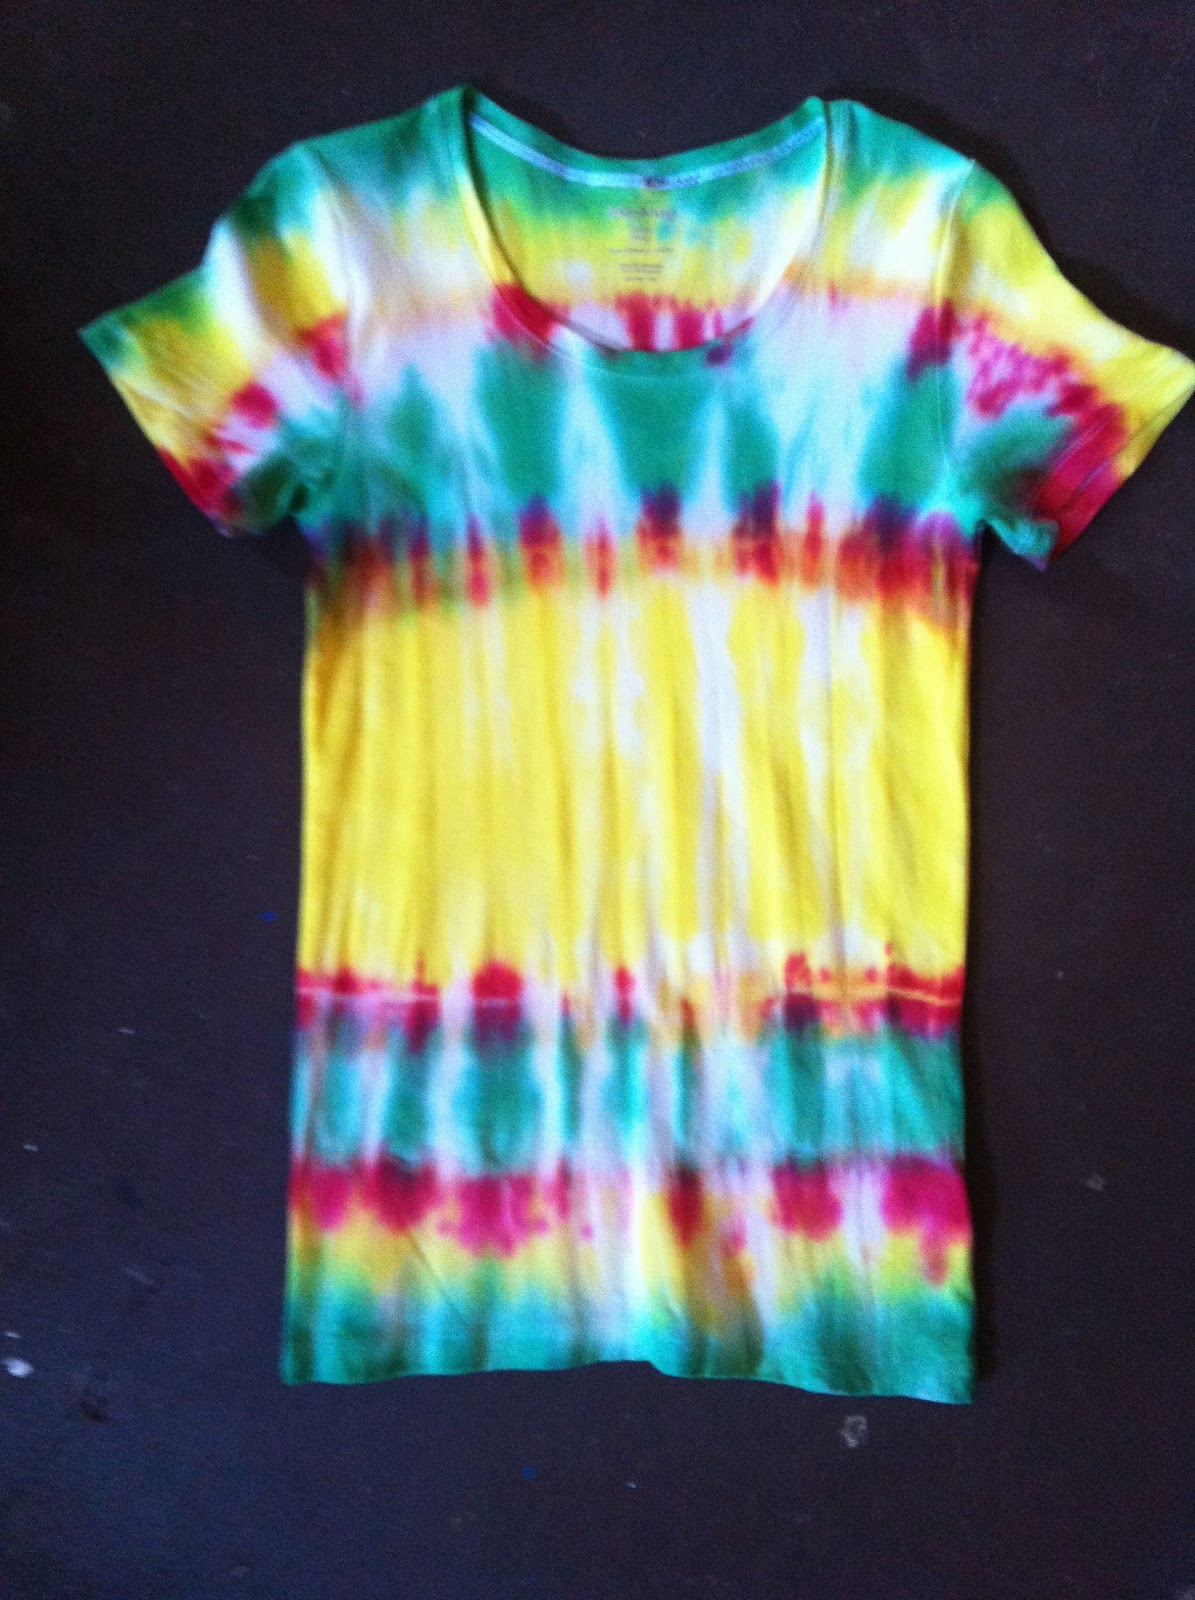 Created for Creating: Tie Dye!!